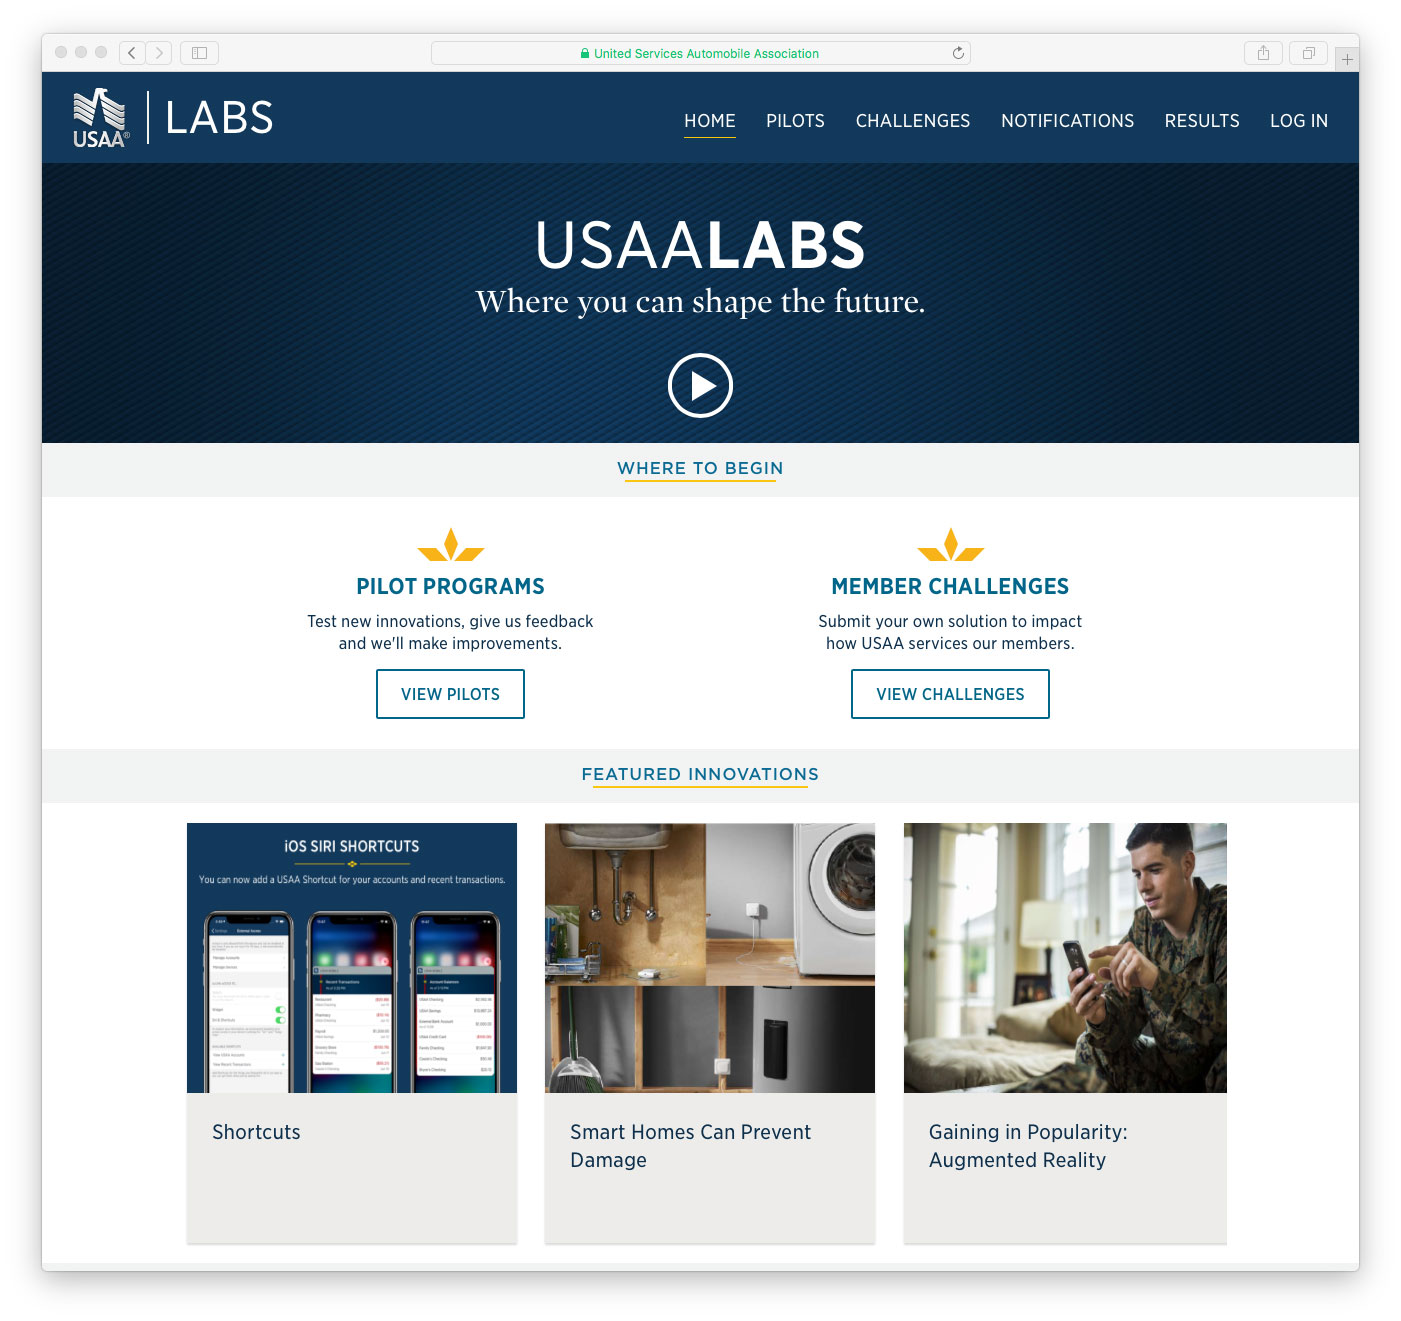 7 Financial Institutions Taking Innovation Labs to the Next